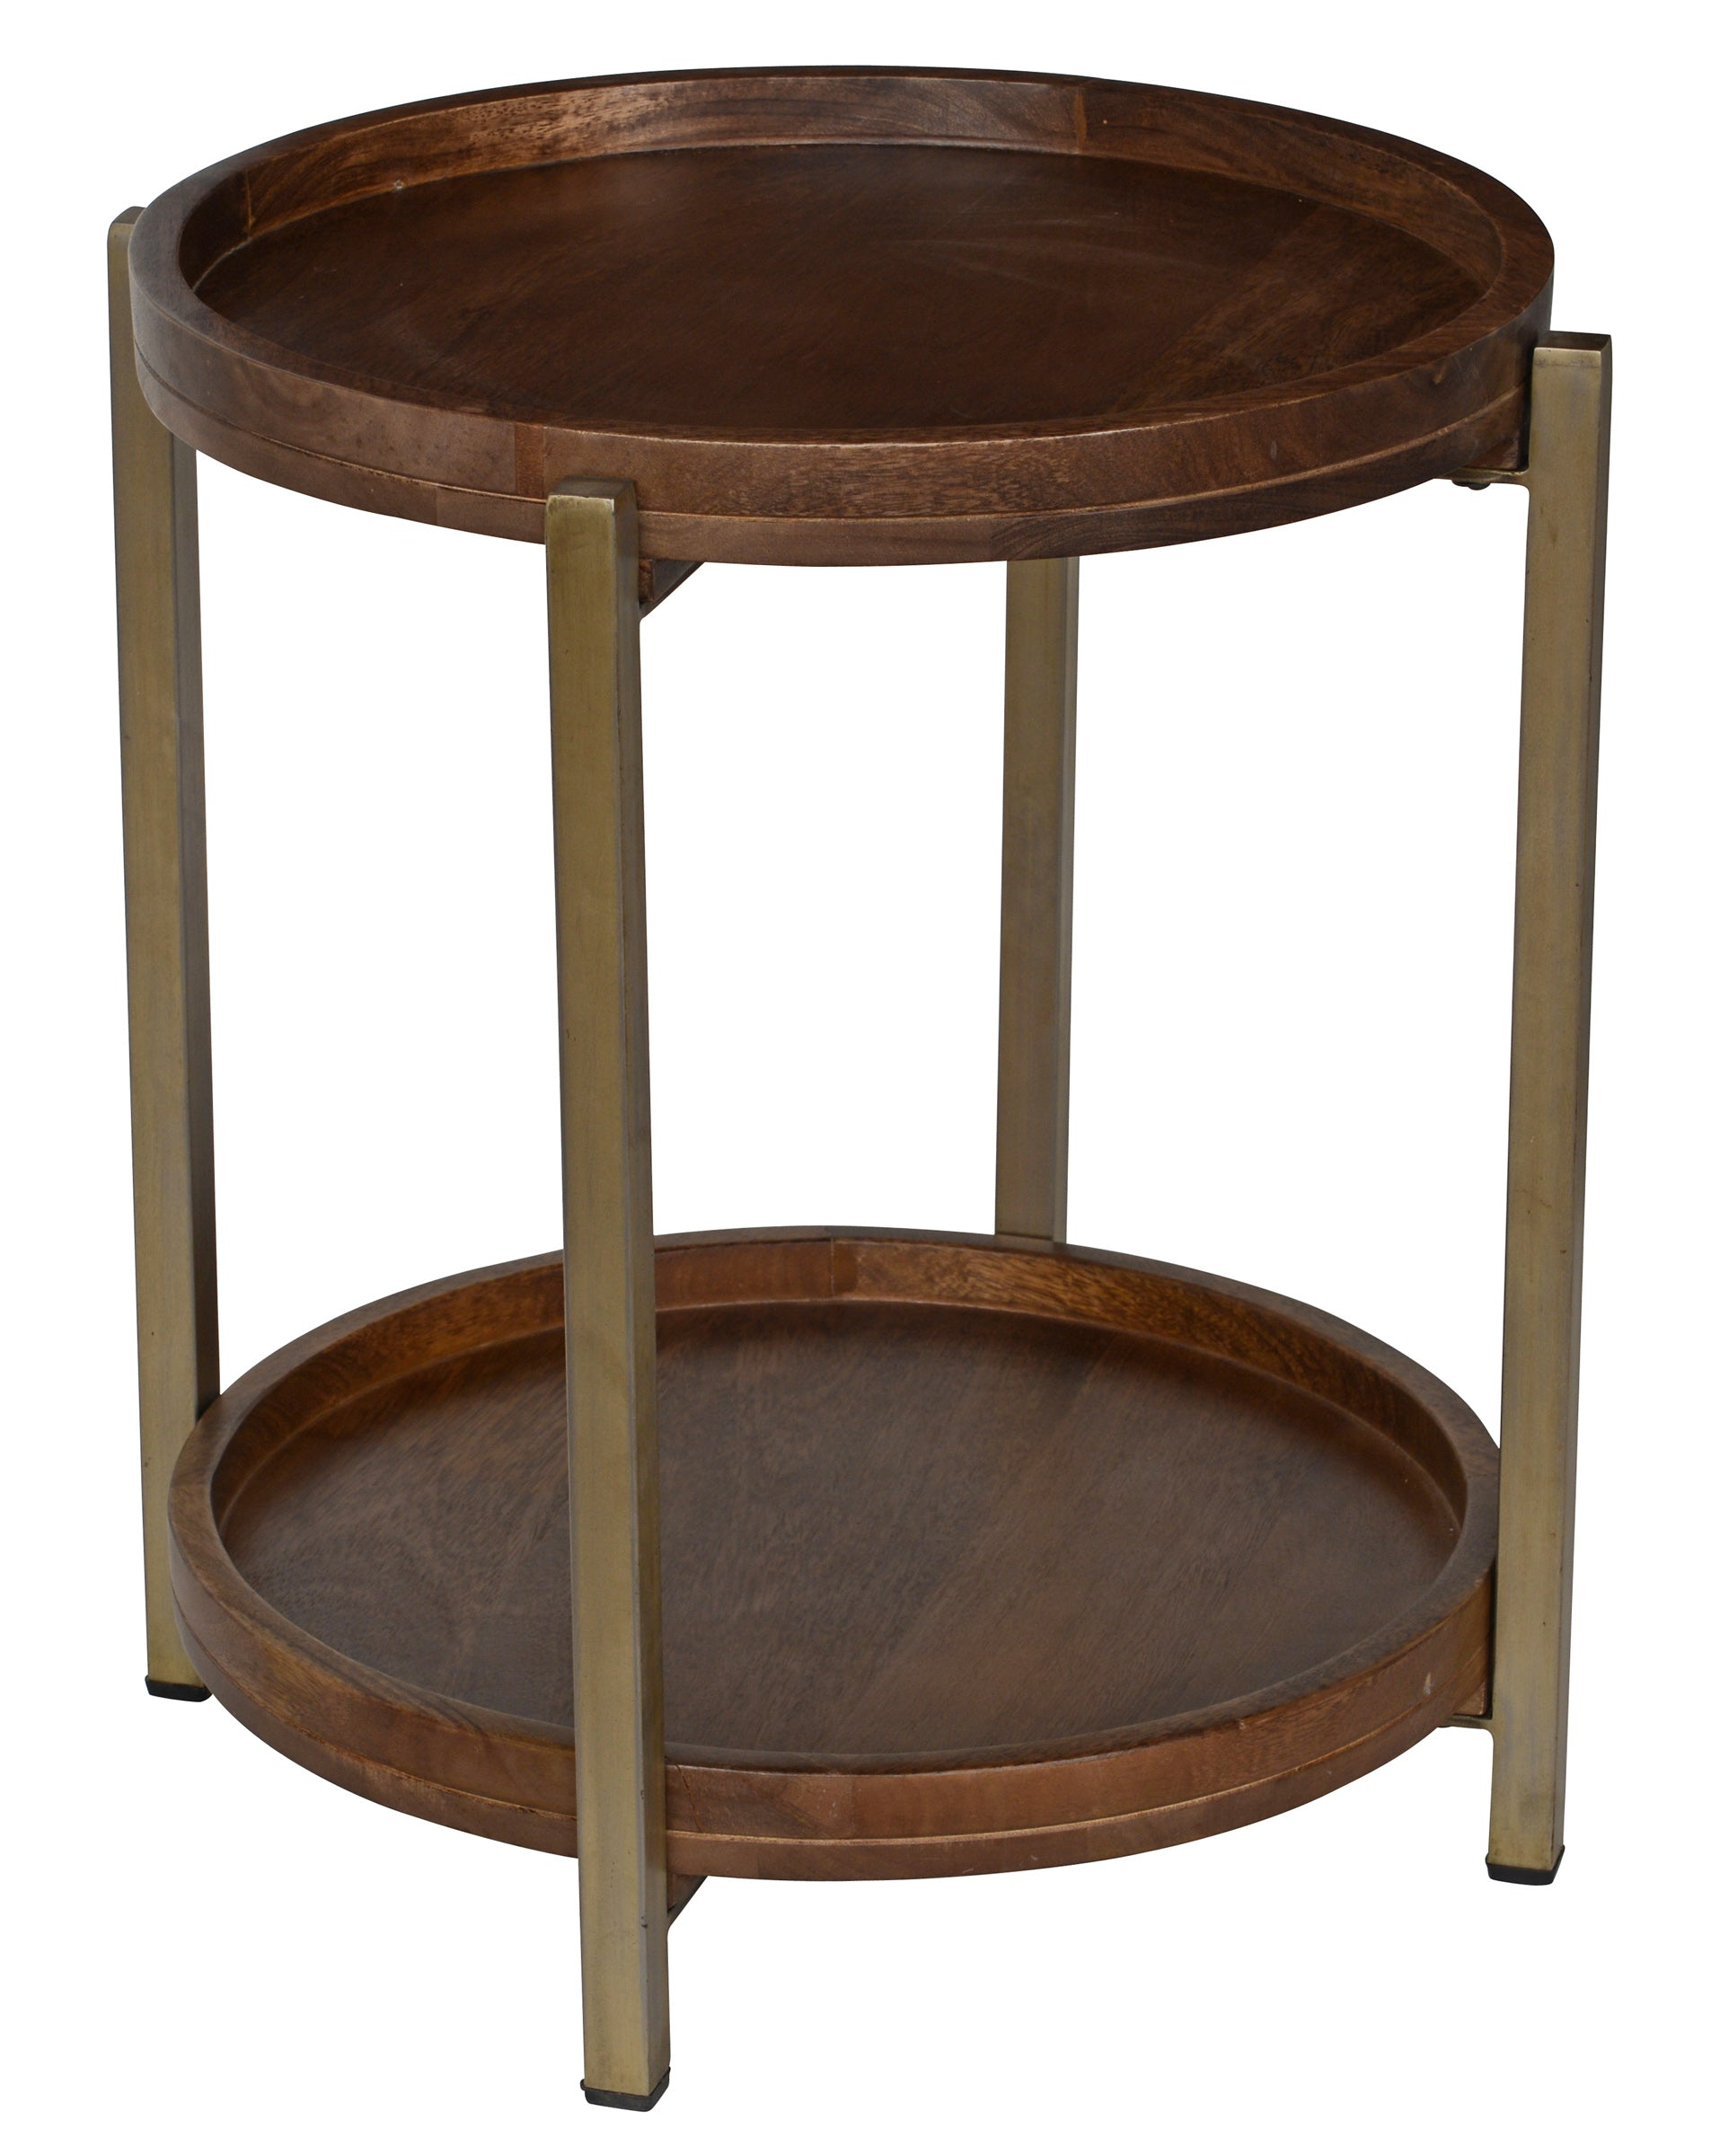 classic home living room occasional end table